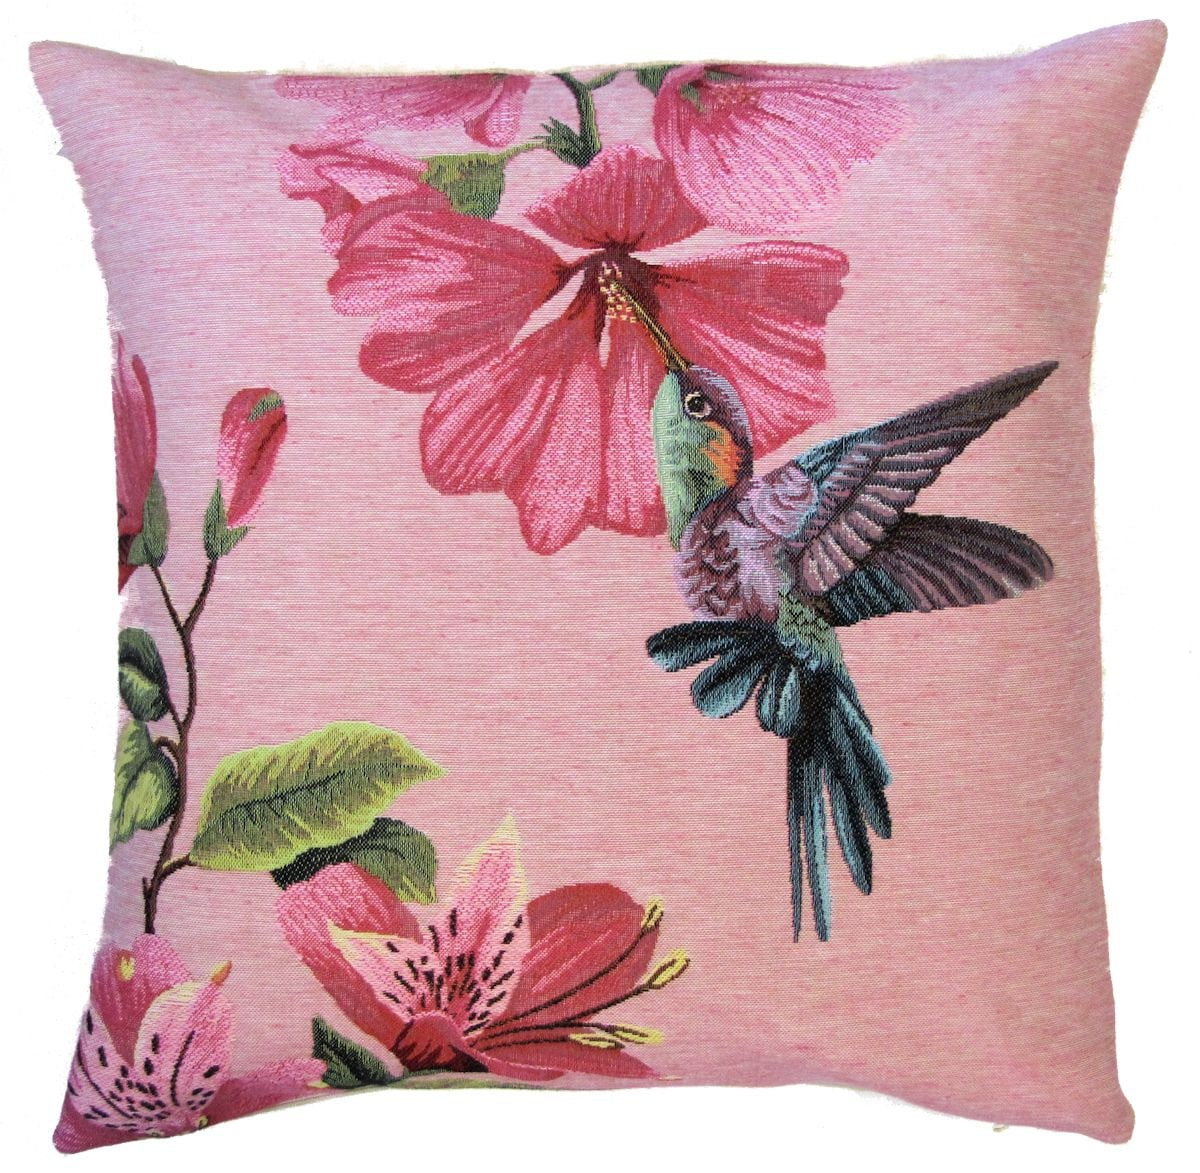 Hummingbird Pillow Cover Hummingbird And Flower Cushion Cover